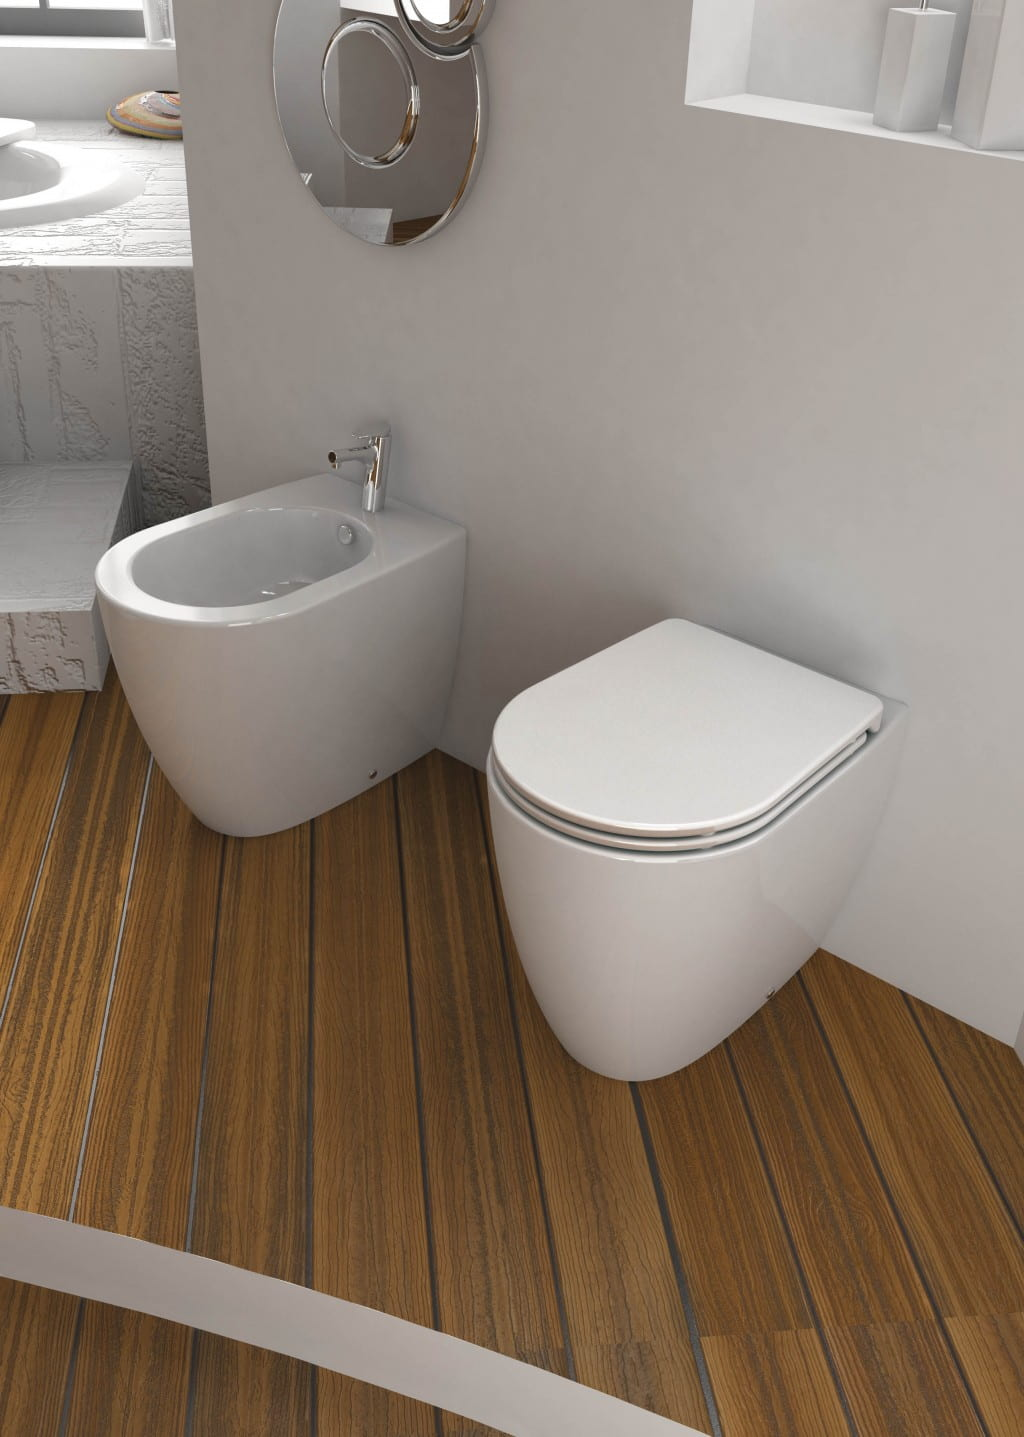 wc con bidet filo muro aida coppia di sanitari filo parete. Black Bedroom Furniture Sets. Home Design Ideas